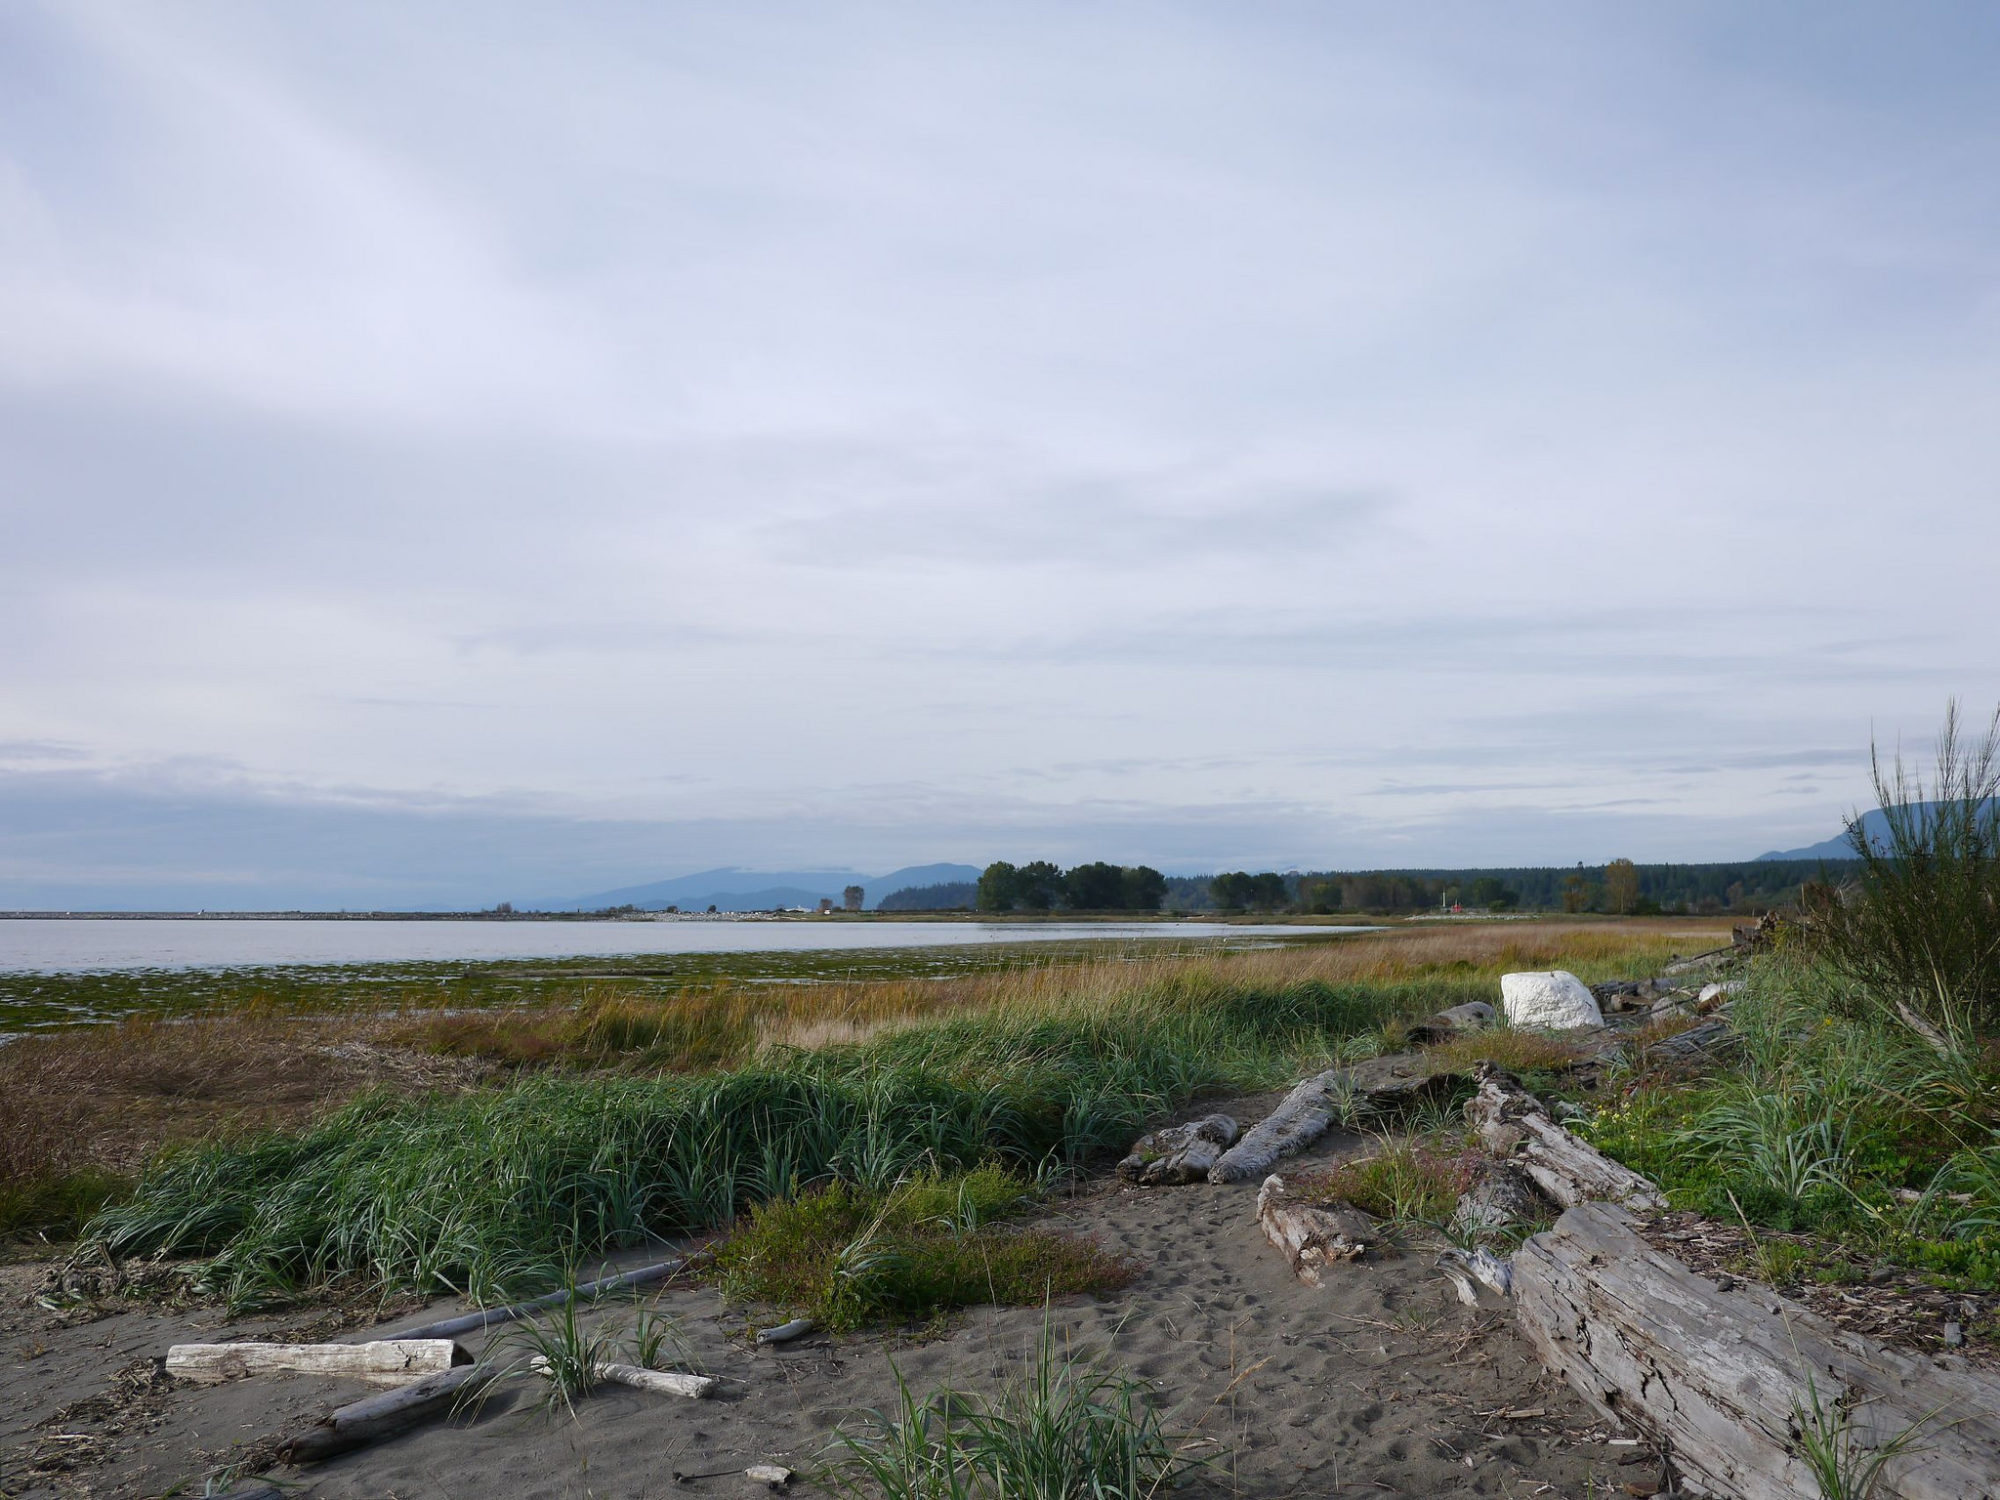 Iona Beach in Richmond BC | www.rtwgirl.com